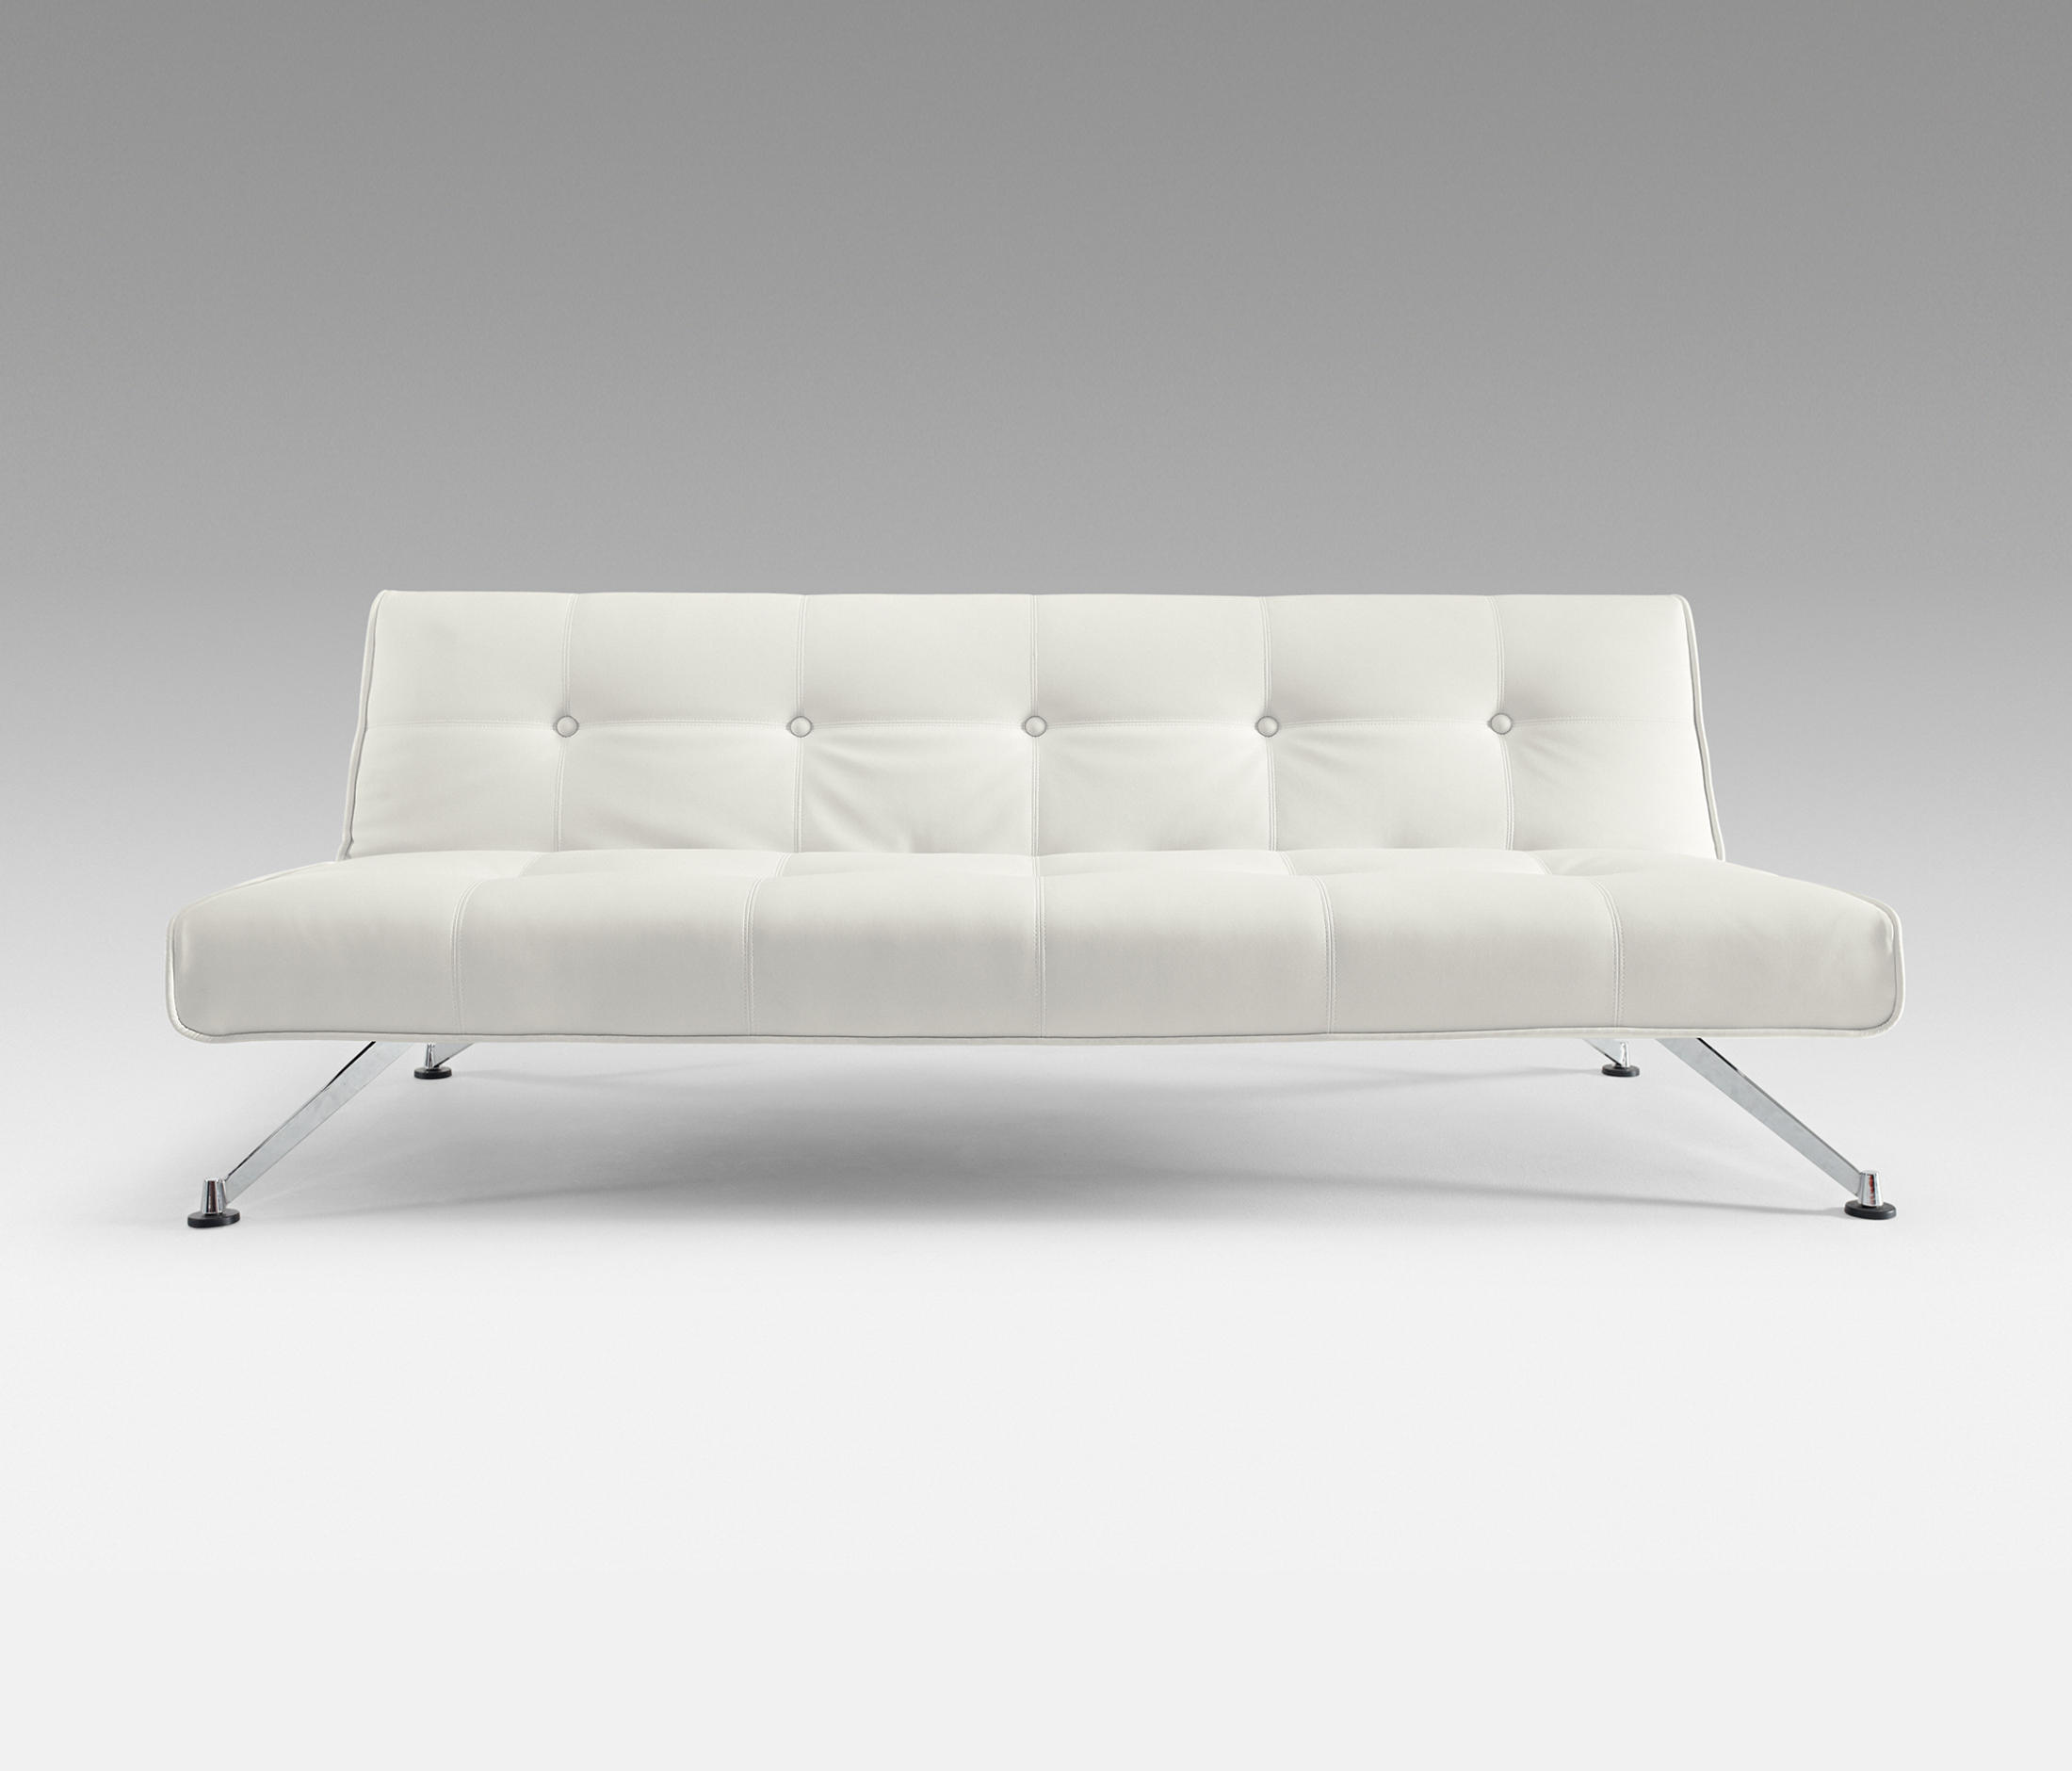 clubber sofa bed cane set olx bangalore 03 without armrests sofas from innovation randers by